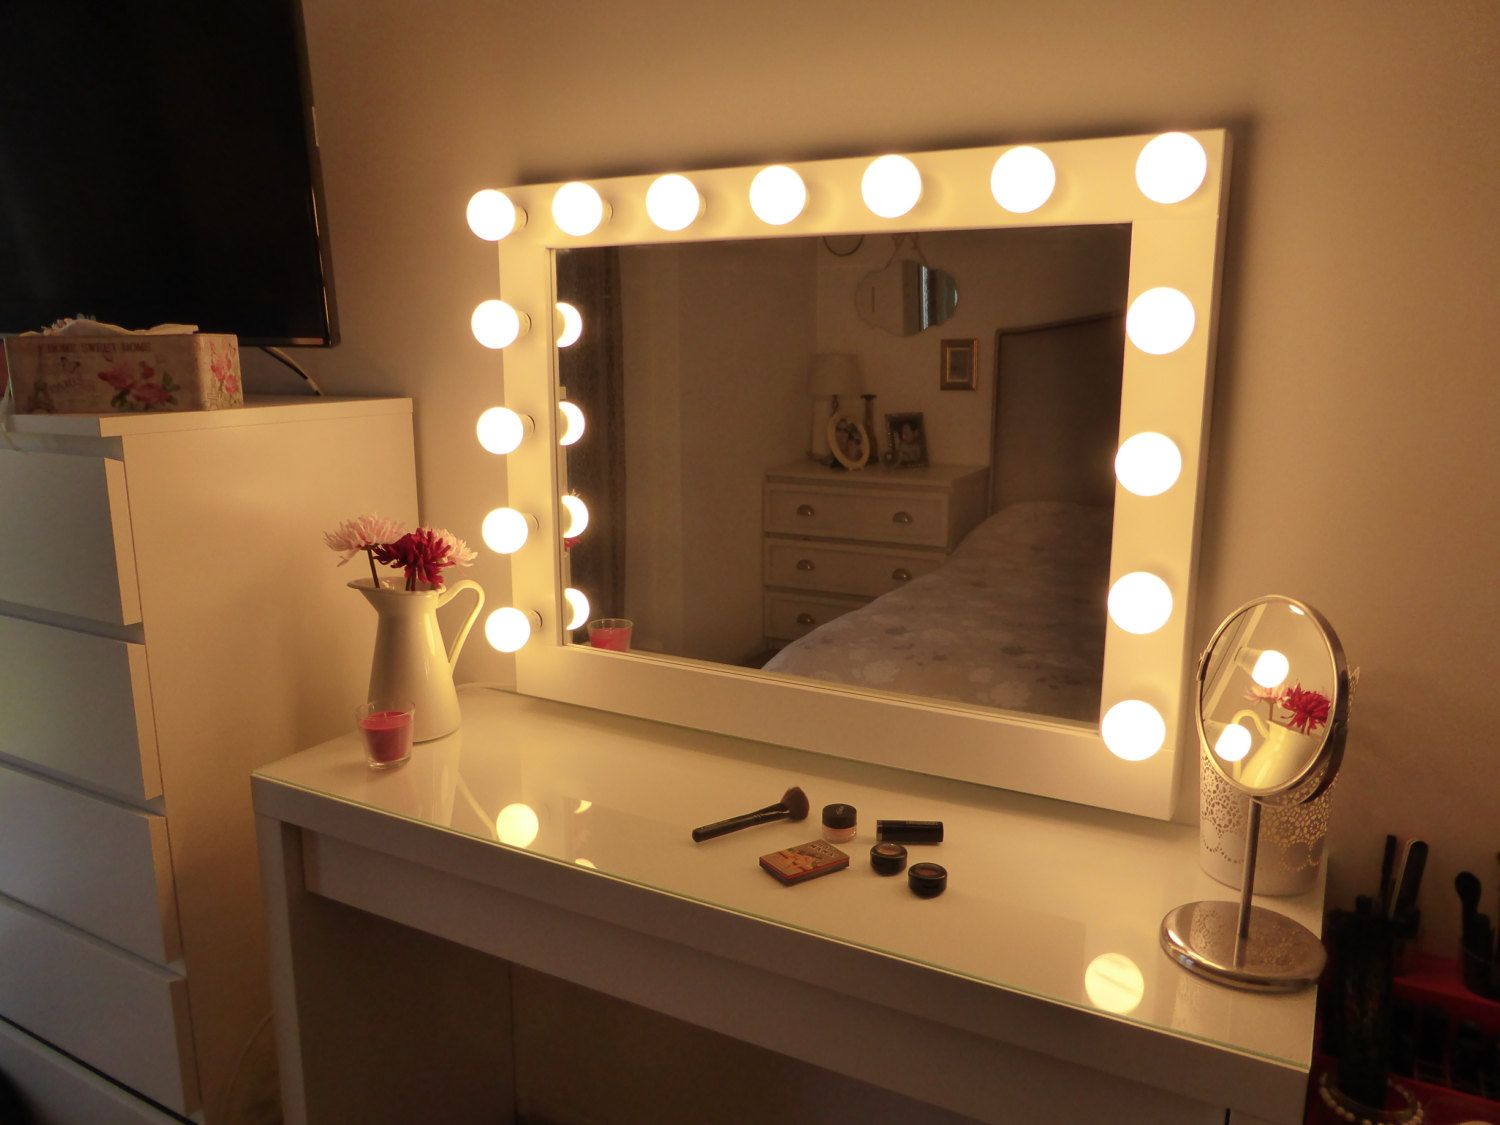 Vanity Mirror With Lights And Plugs : Hollywood lighted vanity mirror-large makeup mirror with lights-Wall hanging/free standing ...